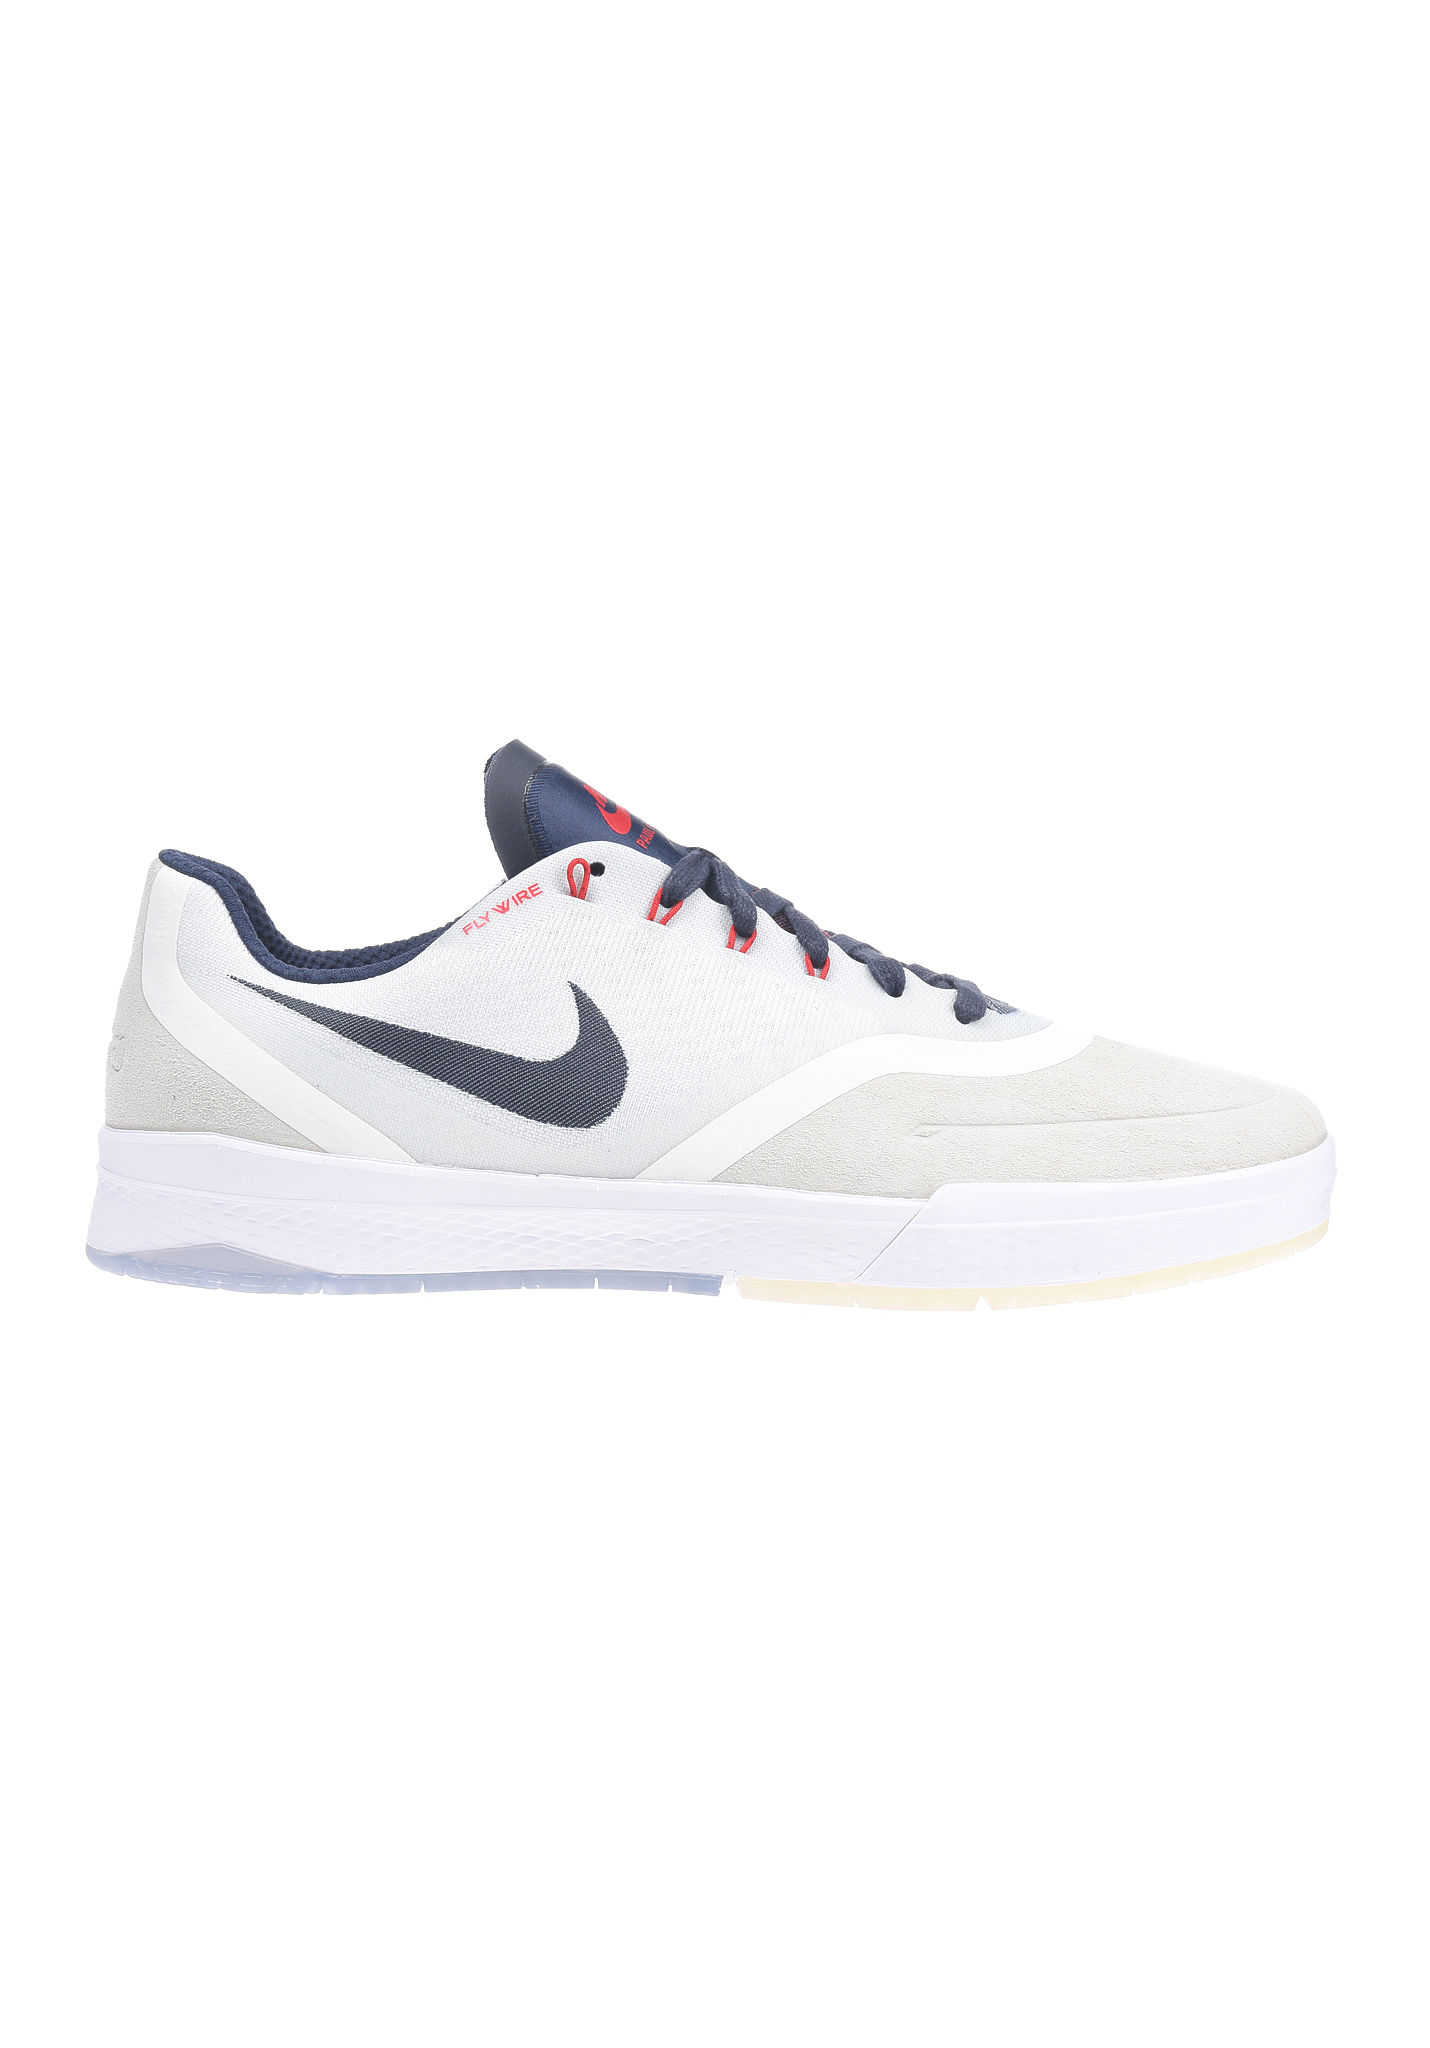 new concept 20272 13bcc NIKE SB Paul Rodriguez 9 Elite - Sneakers for Men - White - Planet Sports